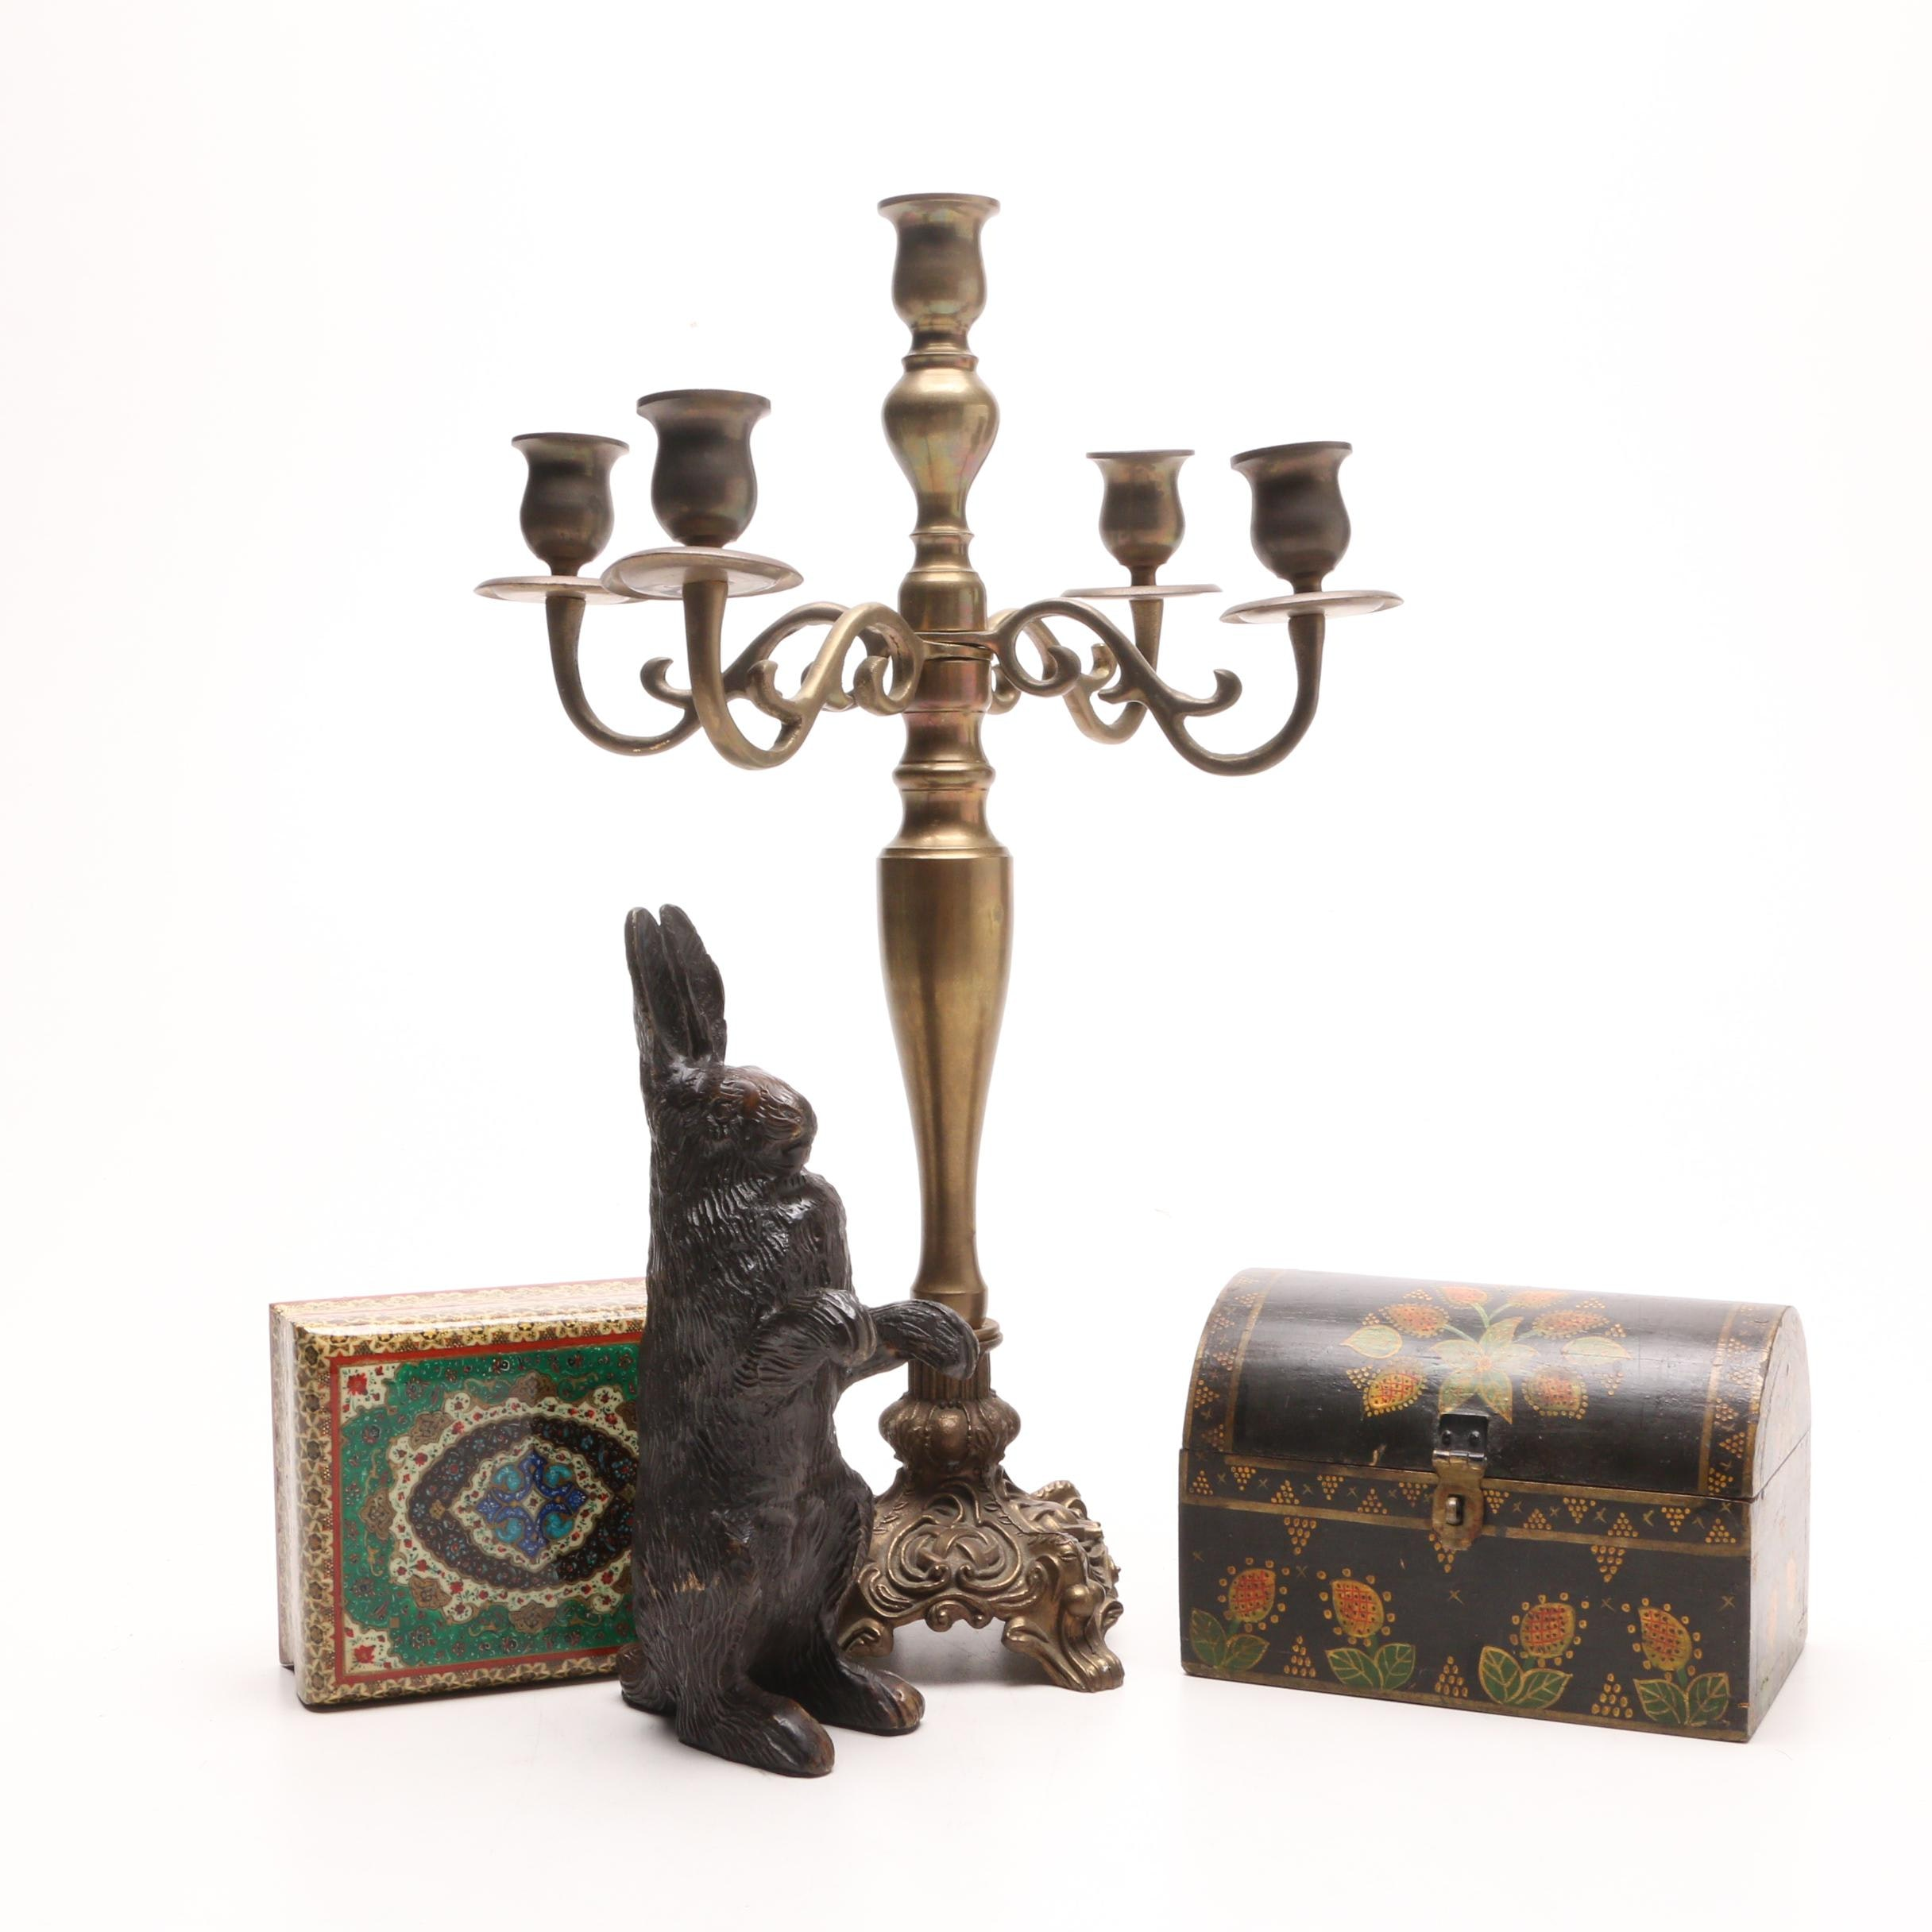 Table Decor Items Including Wooden Trinket Boxes